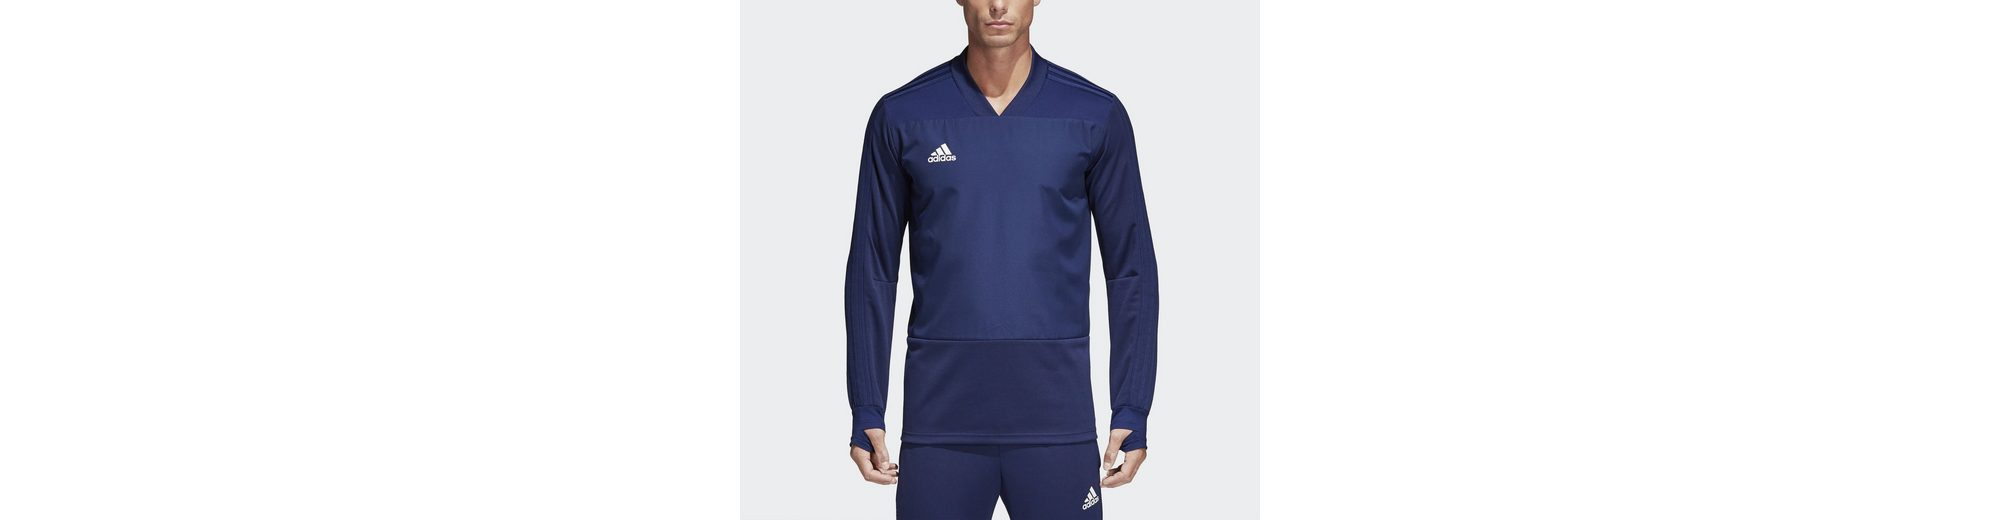 adidas Performance Sporttop Condivo 18 Player